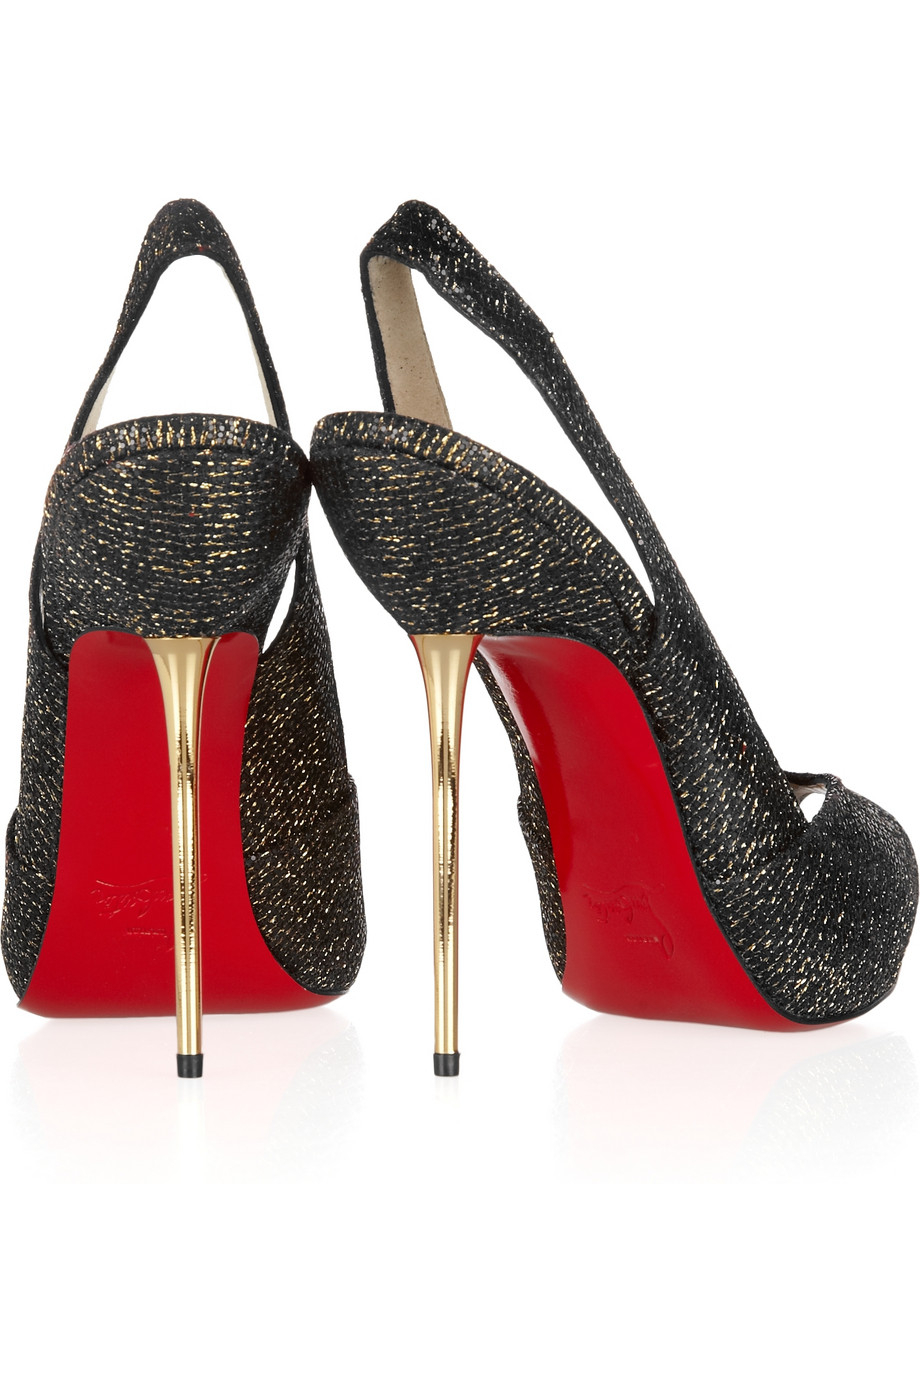 timeless design 0dc1e 7f514 Christian Louboutin Leather Galupump Laser-cut Red Sole Pump ...